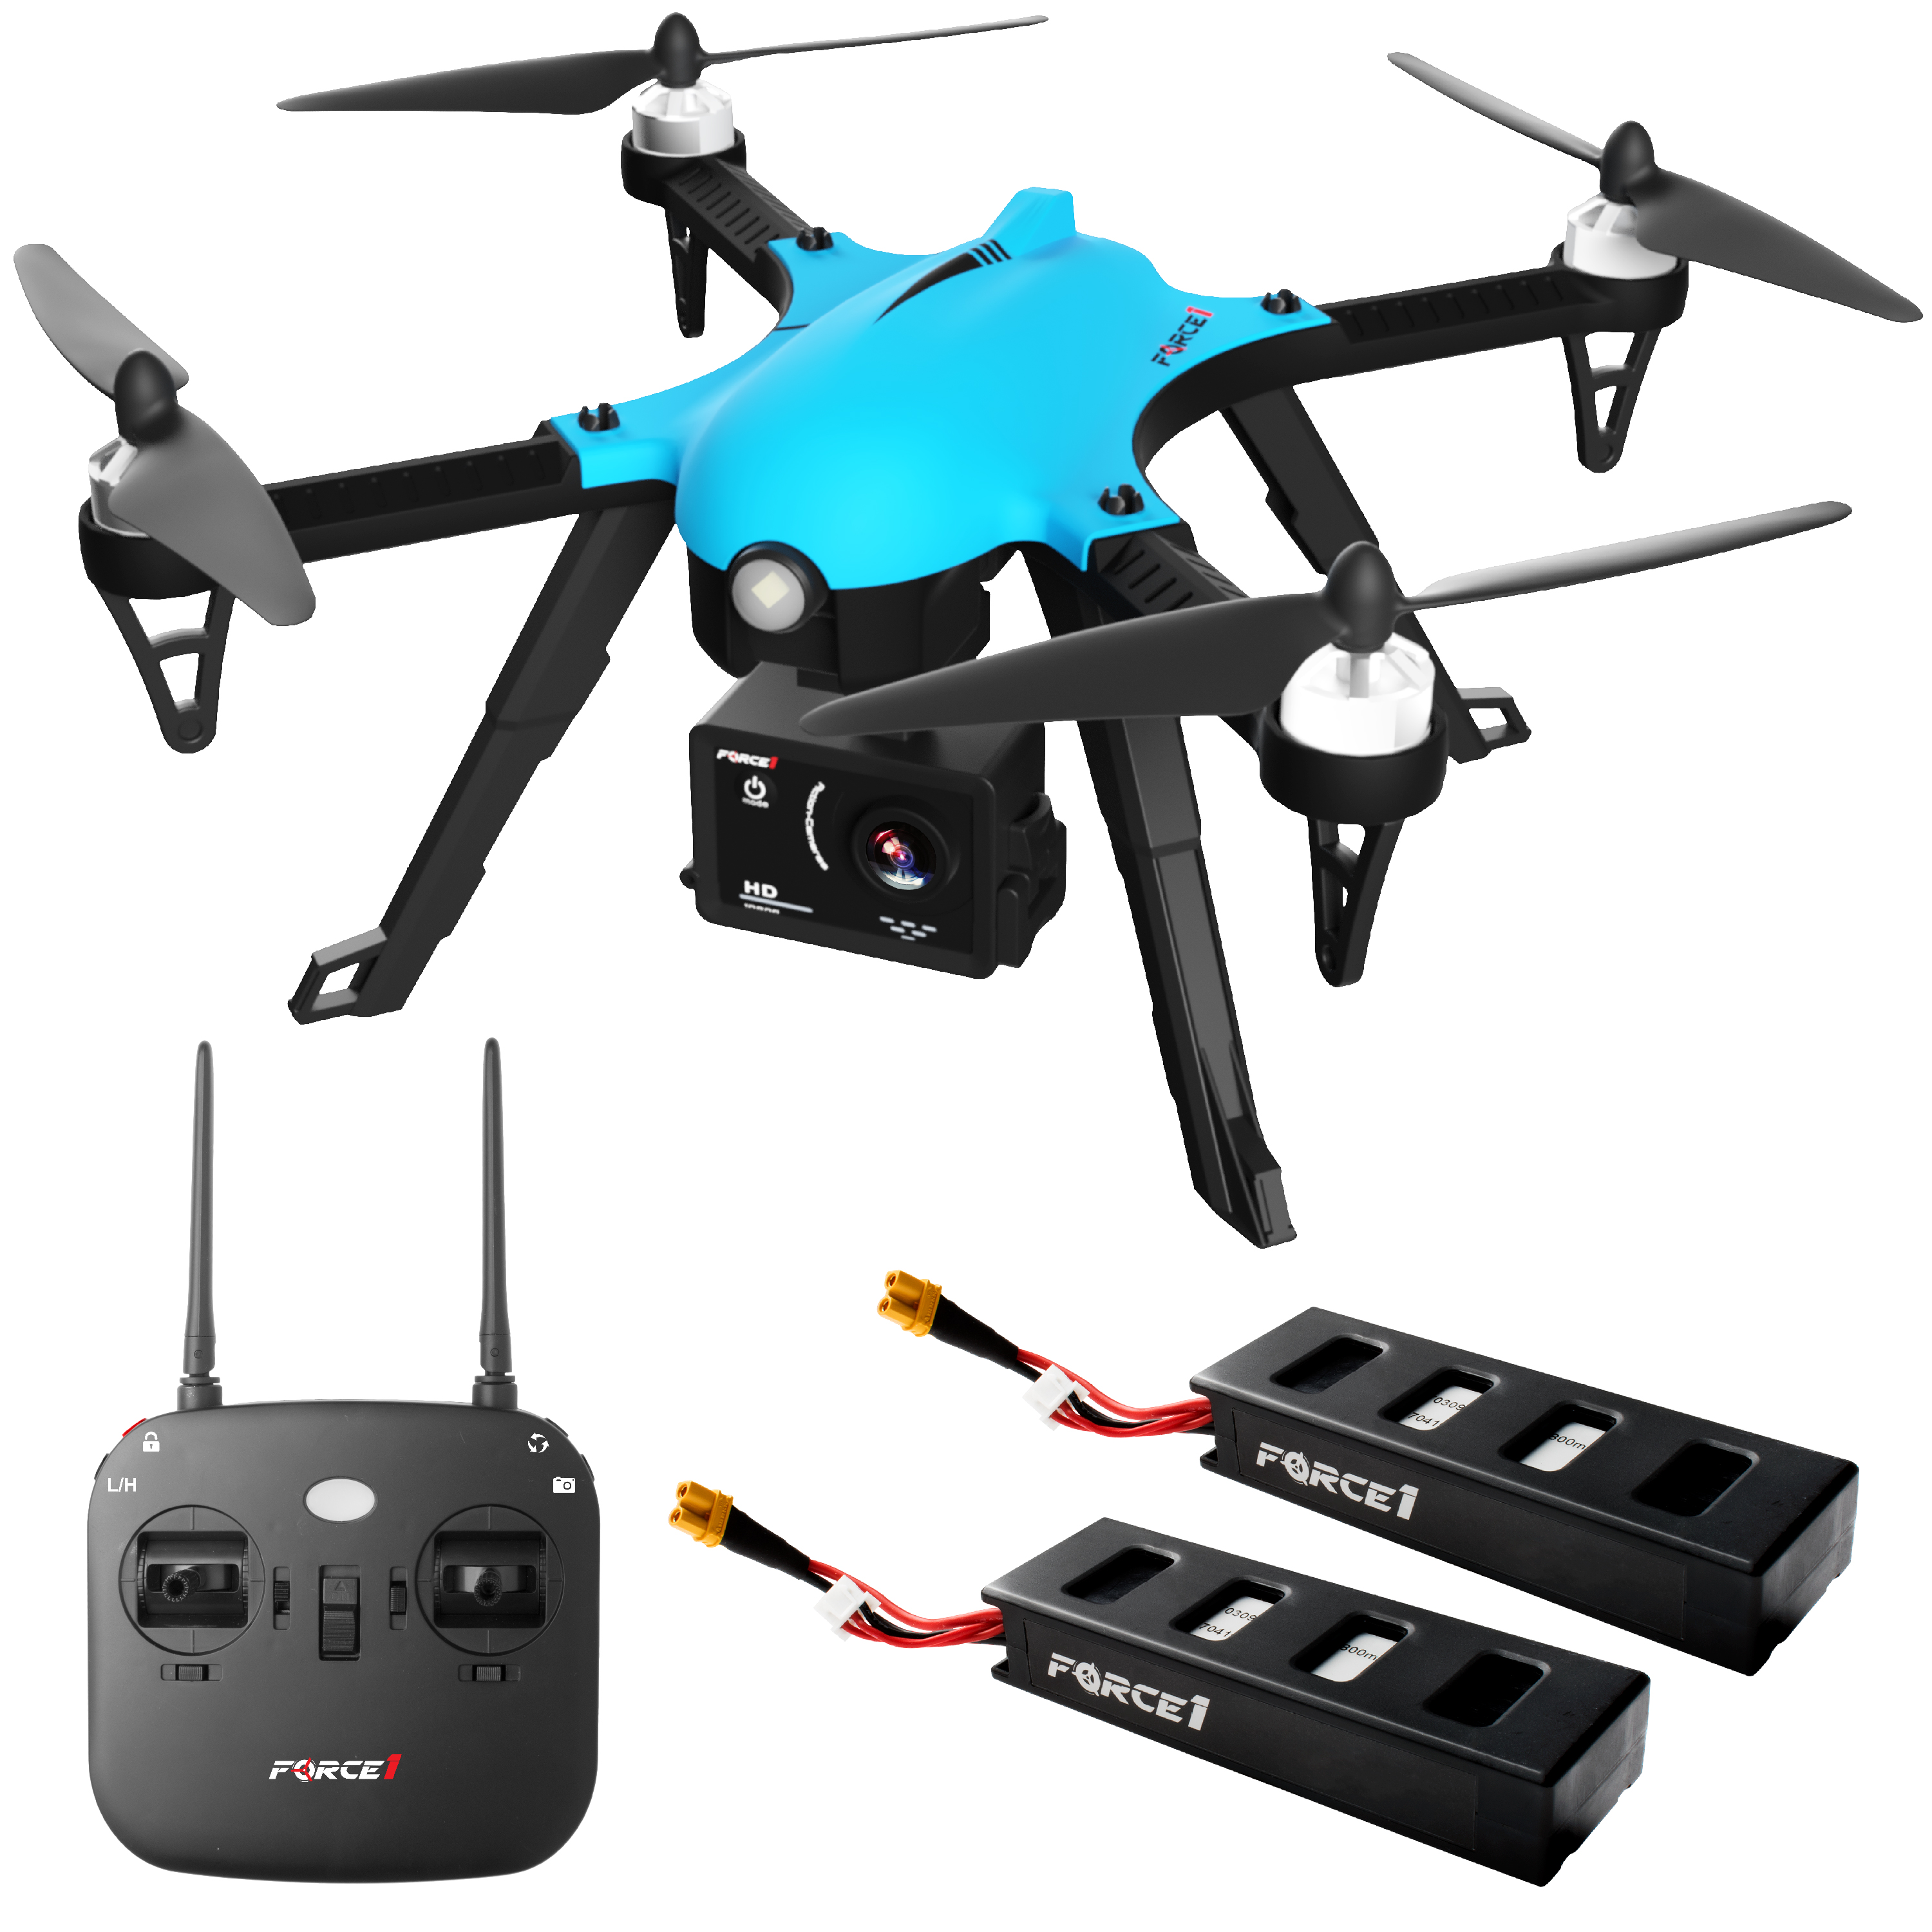 GoPro Ready HD Camera Drone F100 Ghost Ultimate Drone Package Long Range 1080p HD Drone with Camera and... by Force1